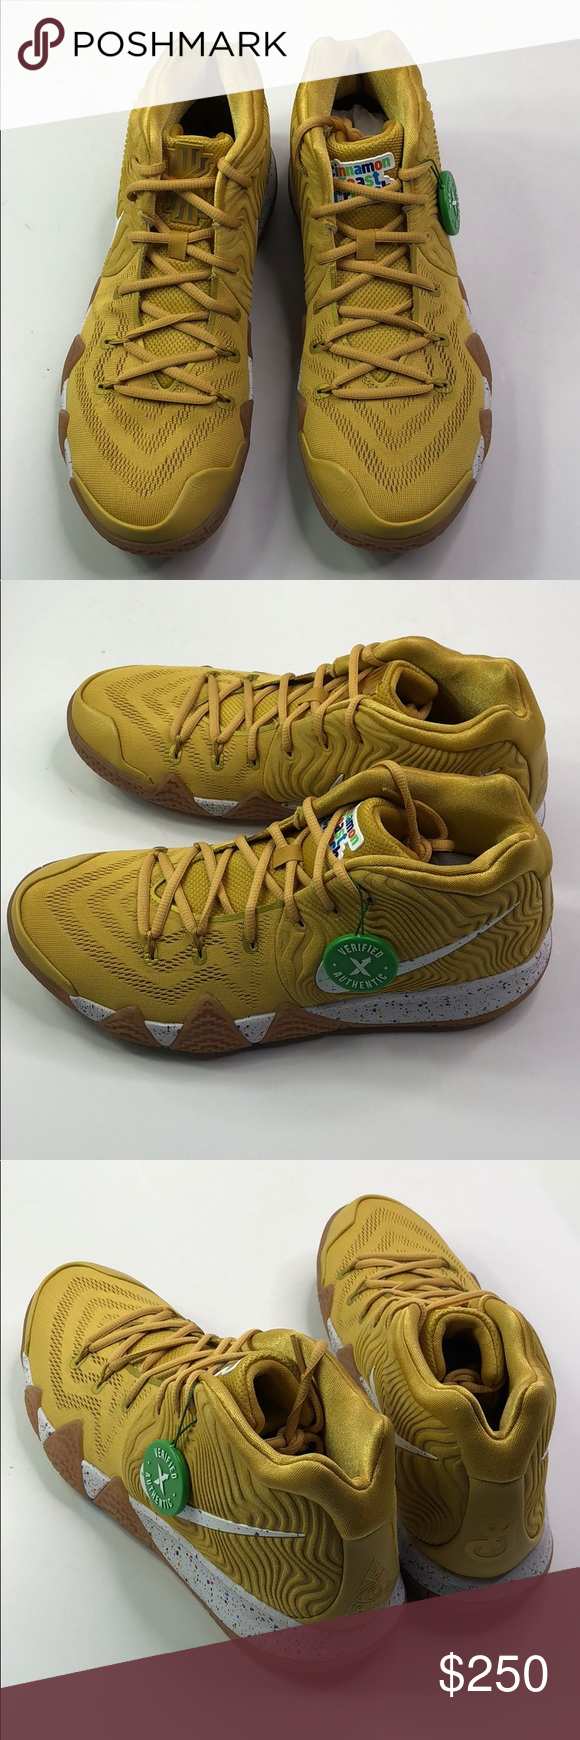 Kyrie 4  Cinnamon Toast Crunch  METALLIC GOLD COIN WHITE RELEASED 2018  STOCKX AUTHENTICATED Nike Shoes Sneakers 022f64b11521